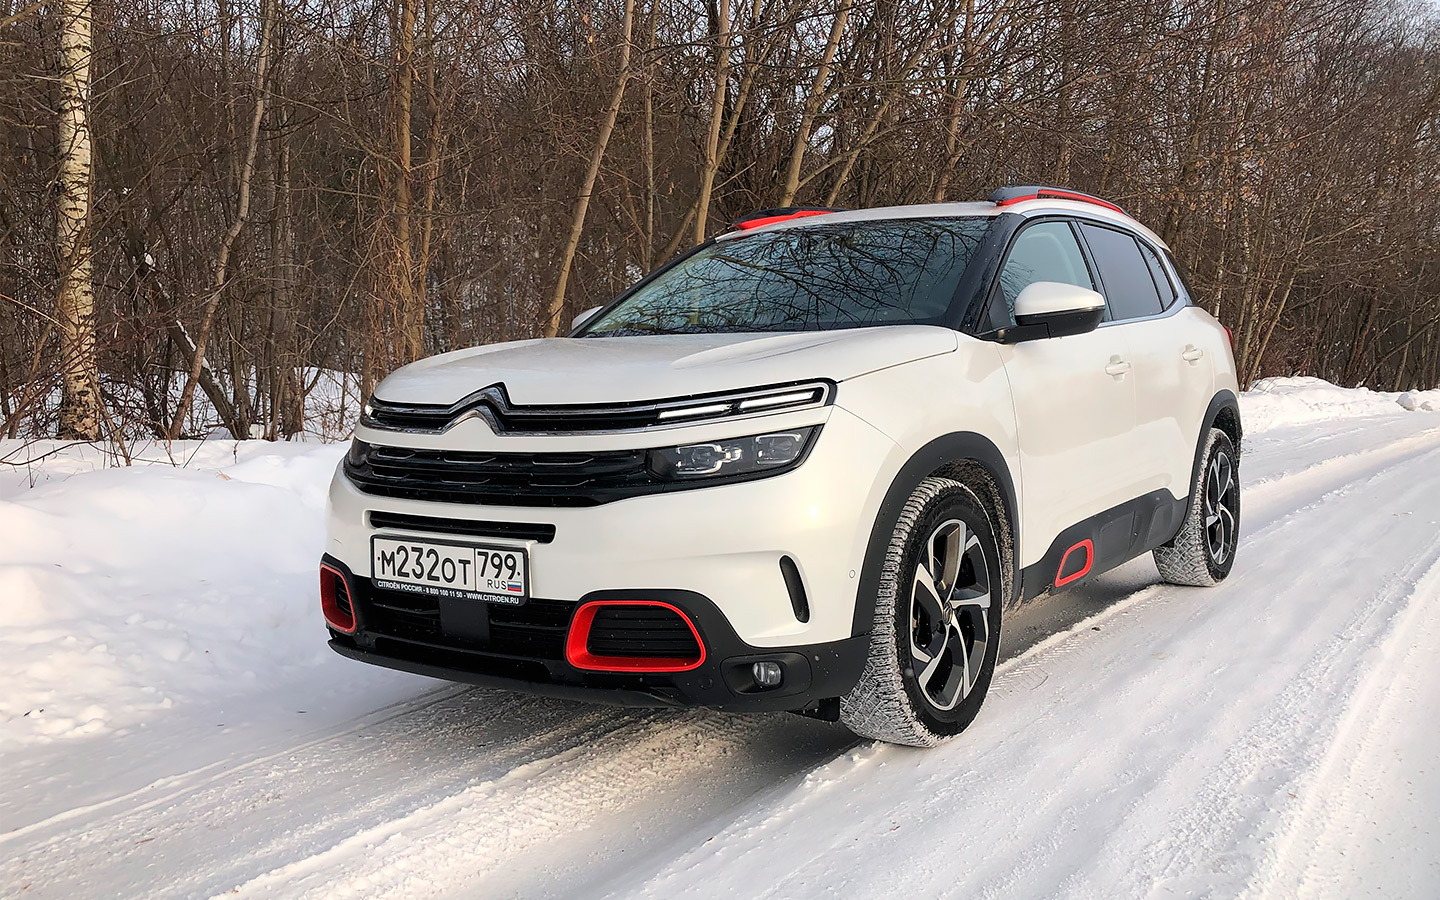 Воздушная подушка. Instagram-тест Citroen C5 Aircross